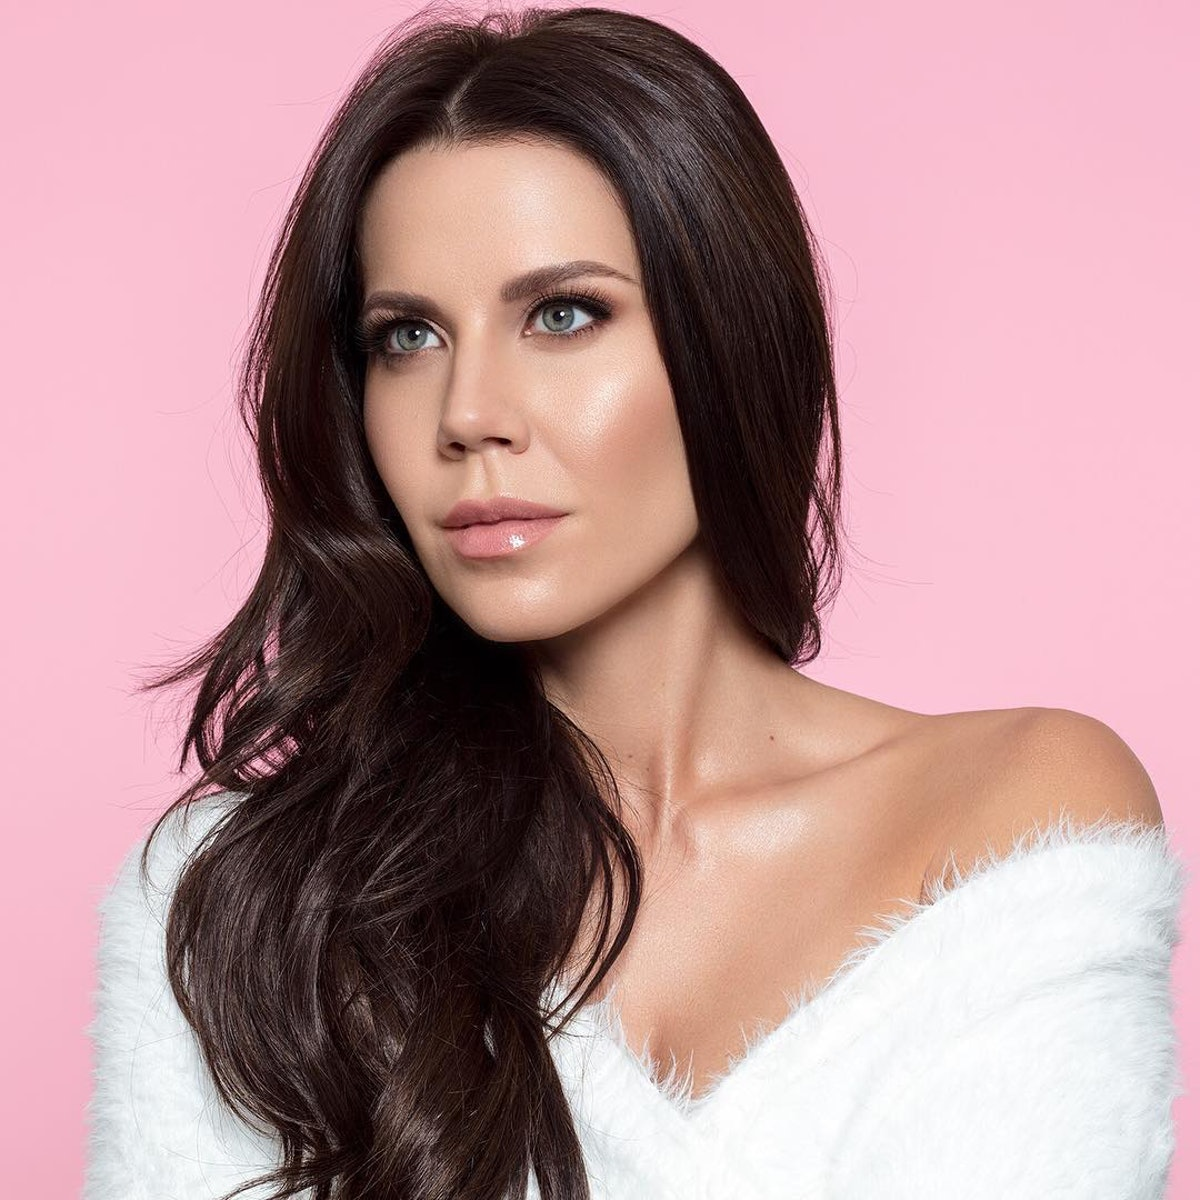 Is Tati Westbrook's Halo Beauty Launching Makeup? She Gave Fans An Update On The Brand